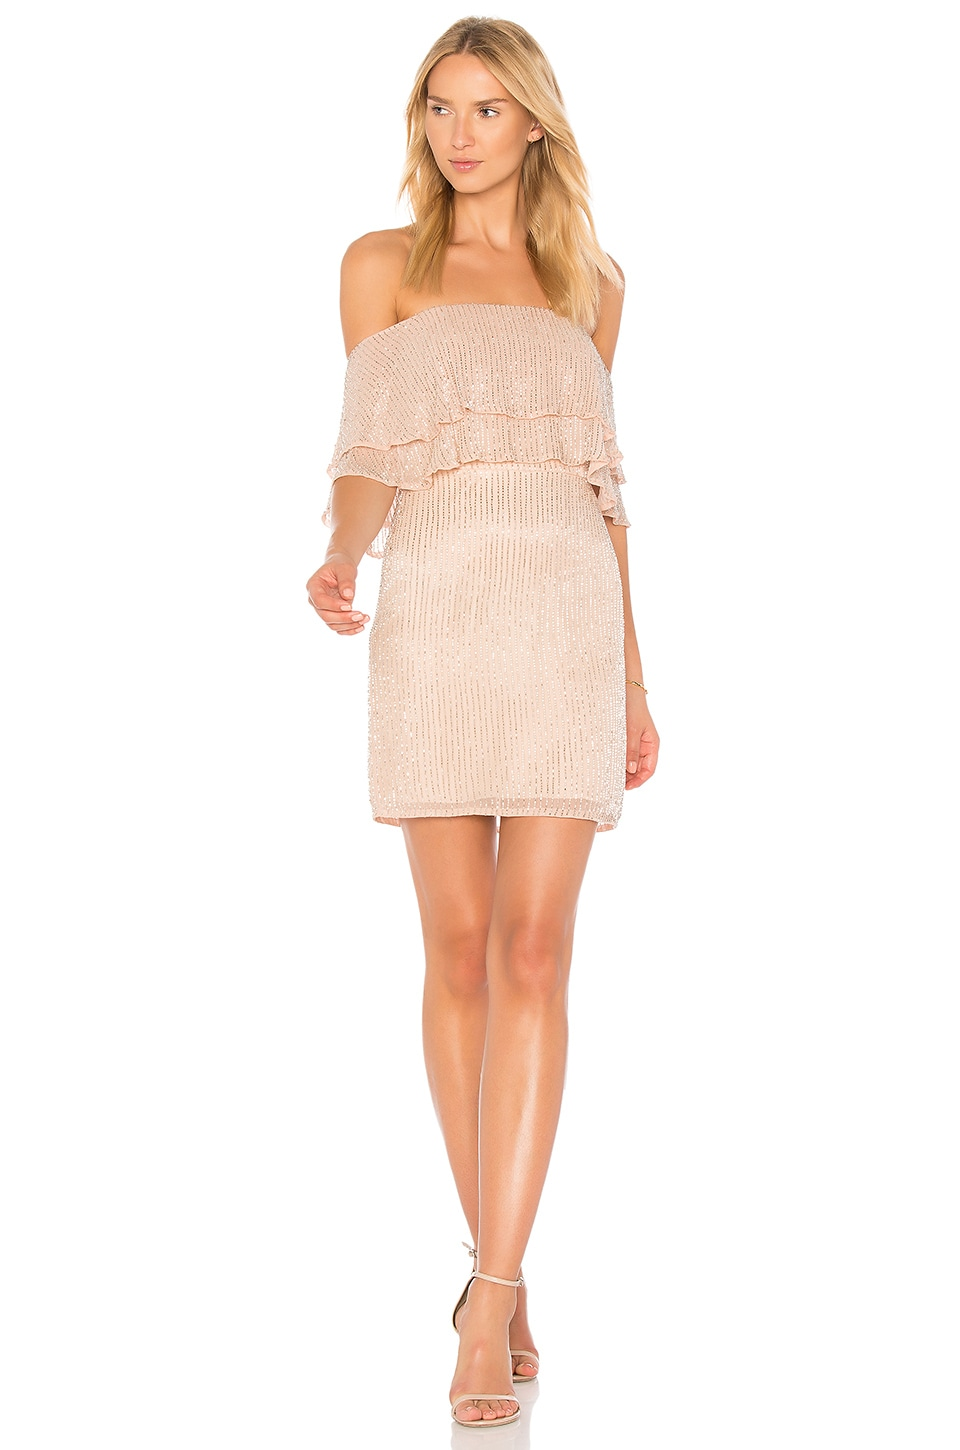 Parker Black Keira Dress in Blush | REVOLVE